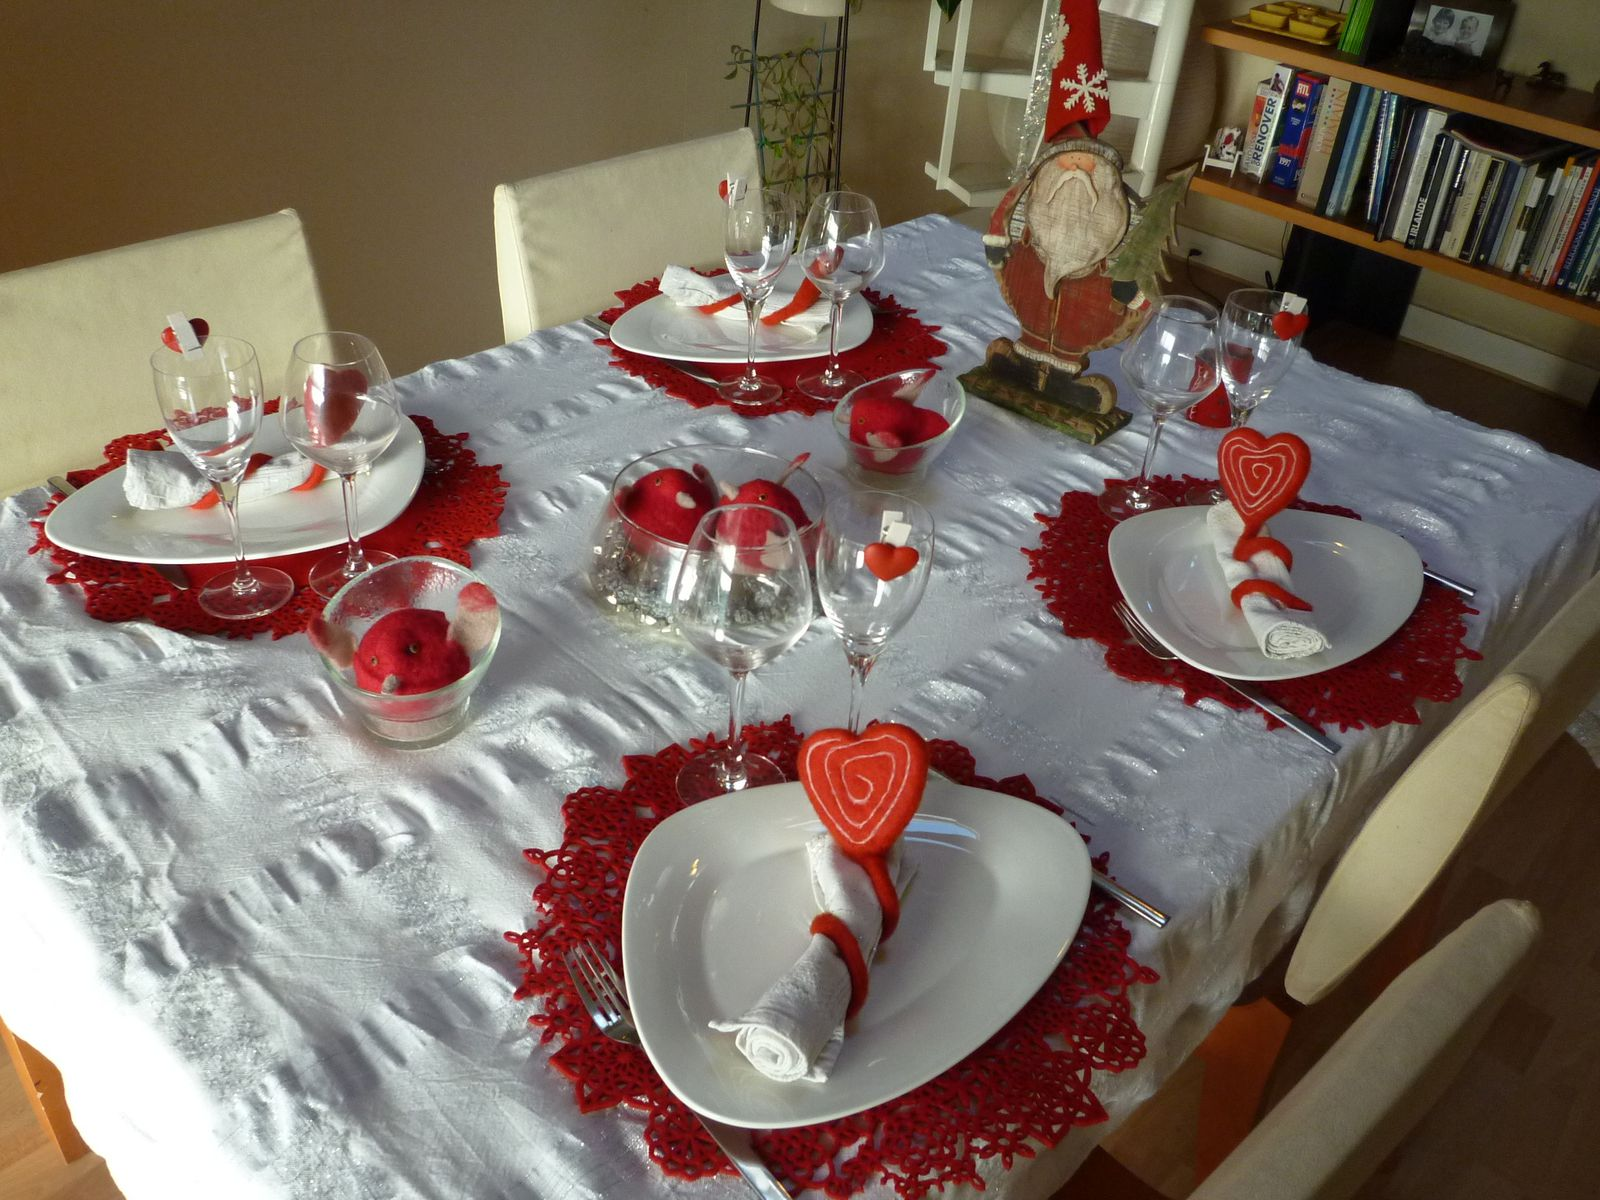 Comment decorer la table de cuisine - Decorer sa table de noel ...